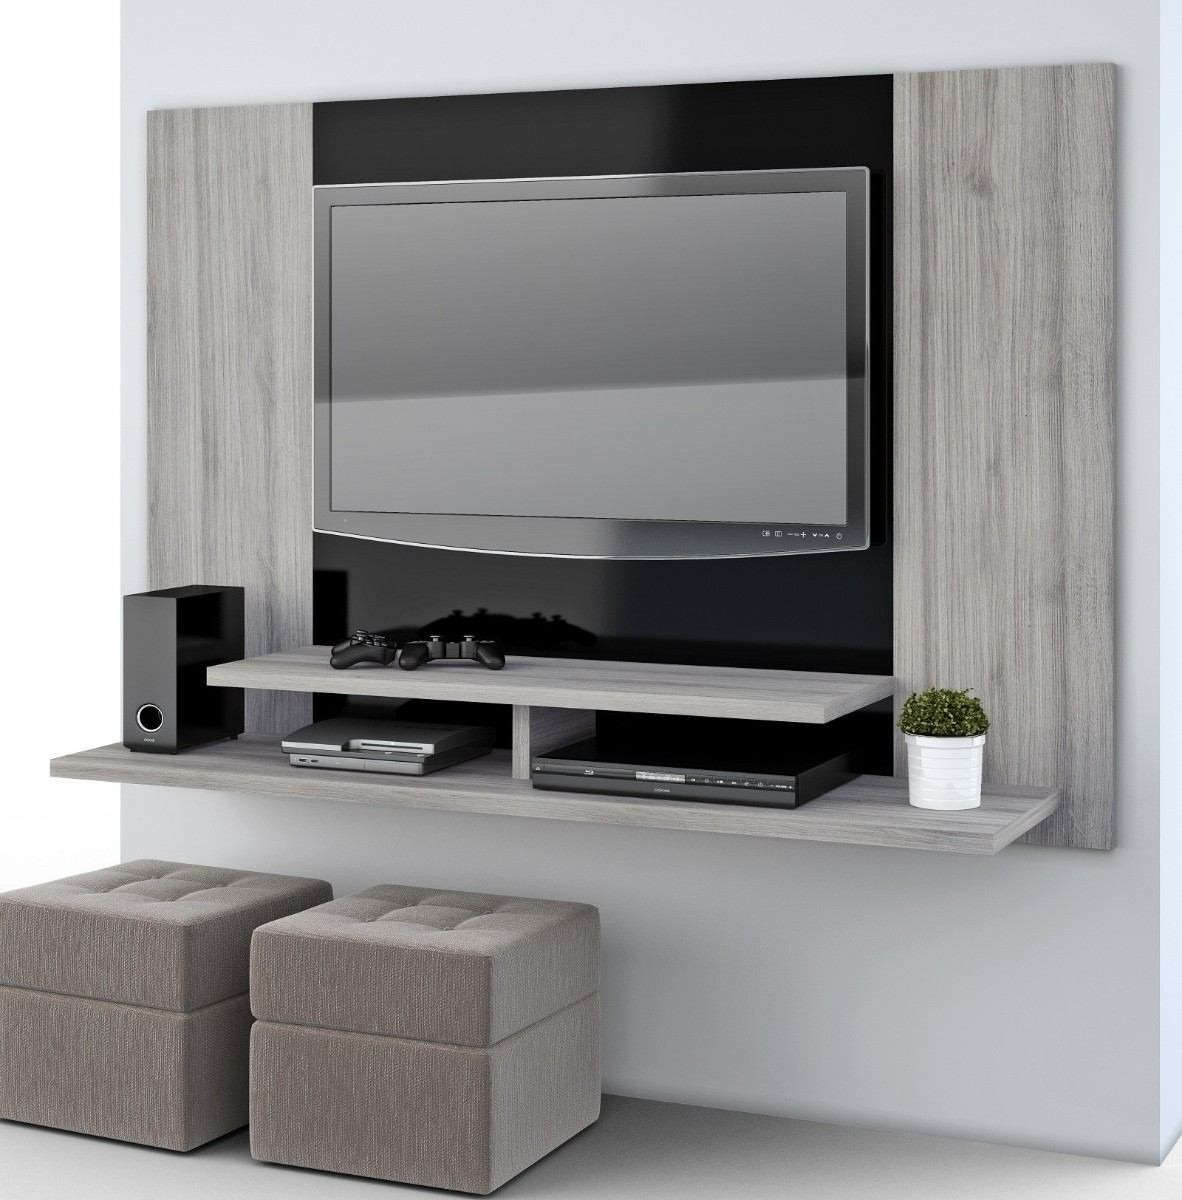 Mueble flotante para tv moderno ref manhatan for Muebles modernos living para tv